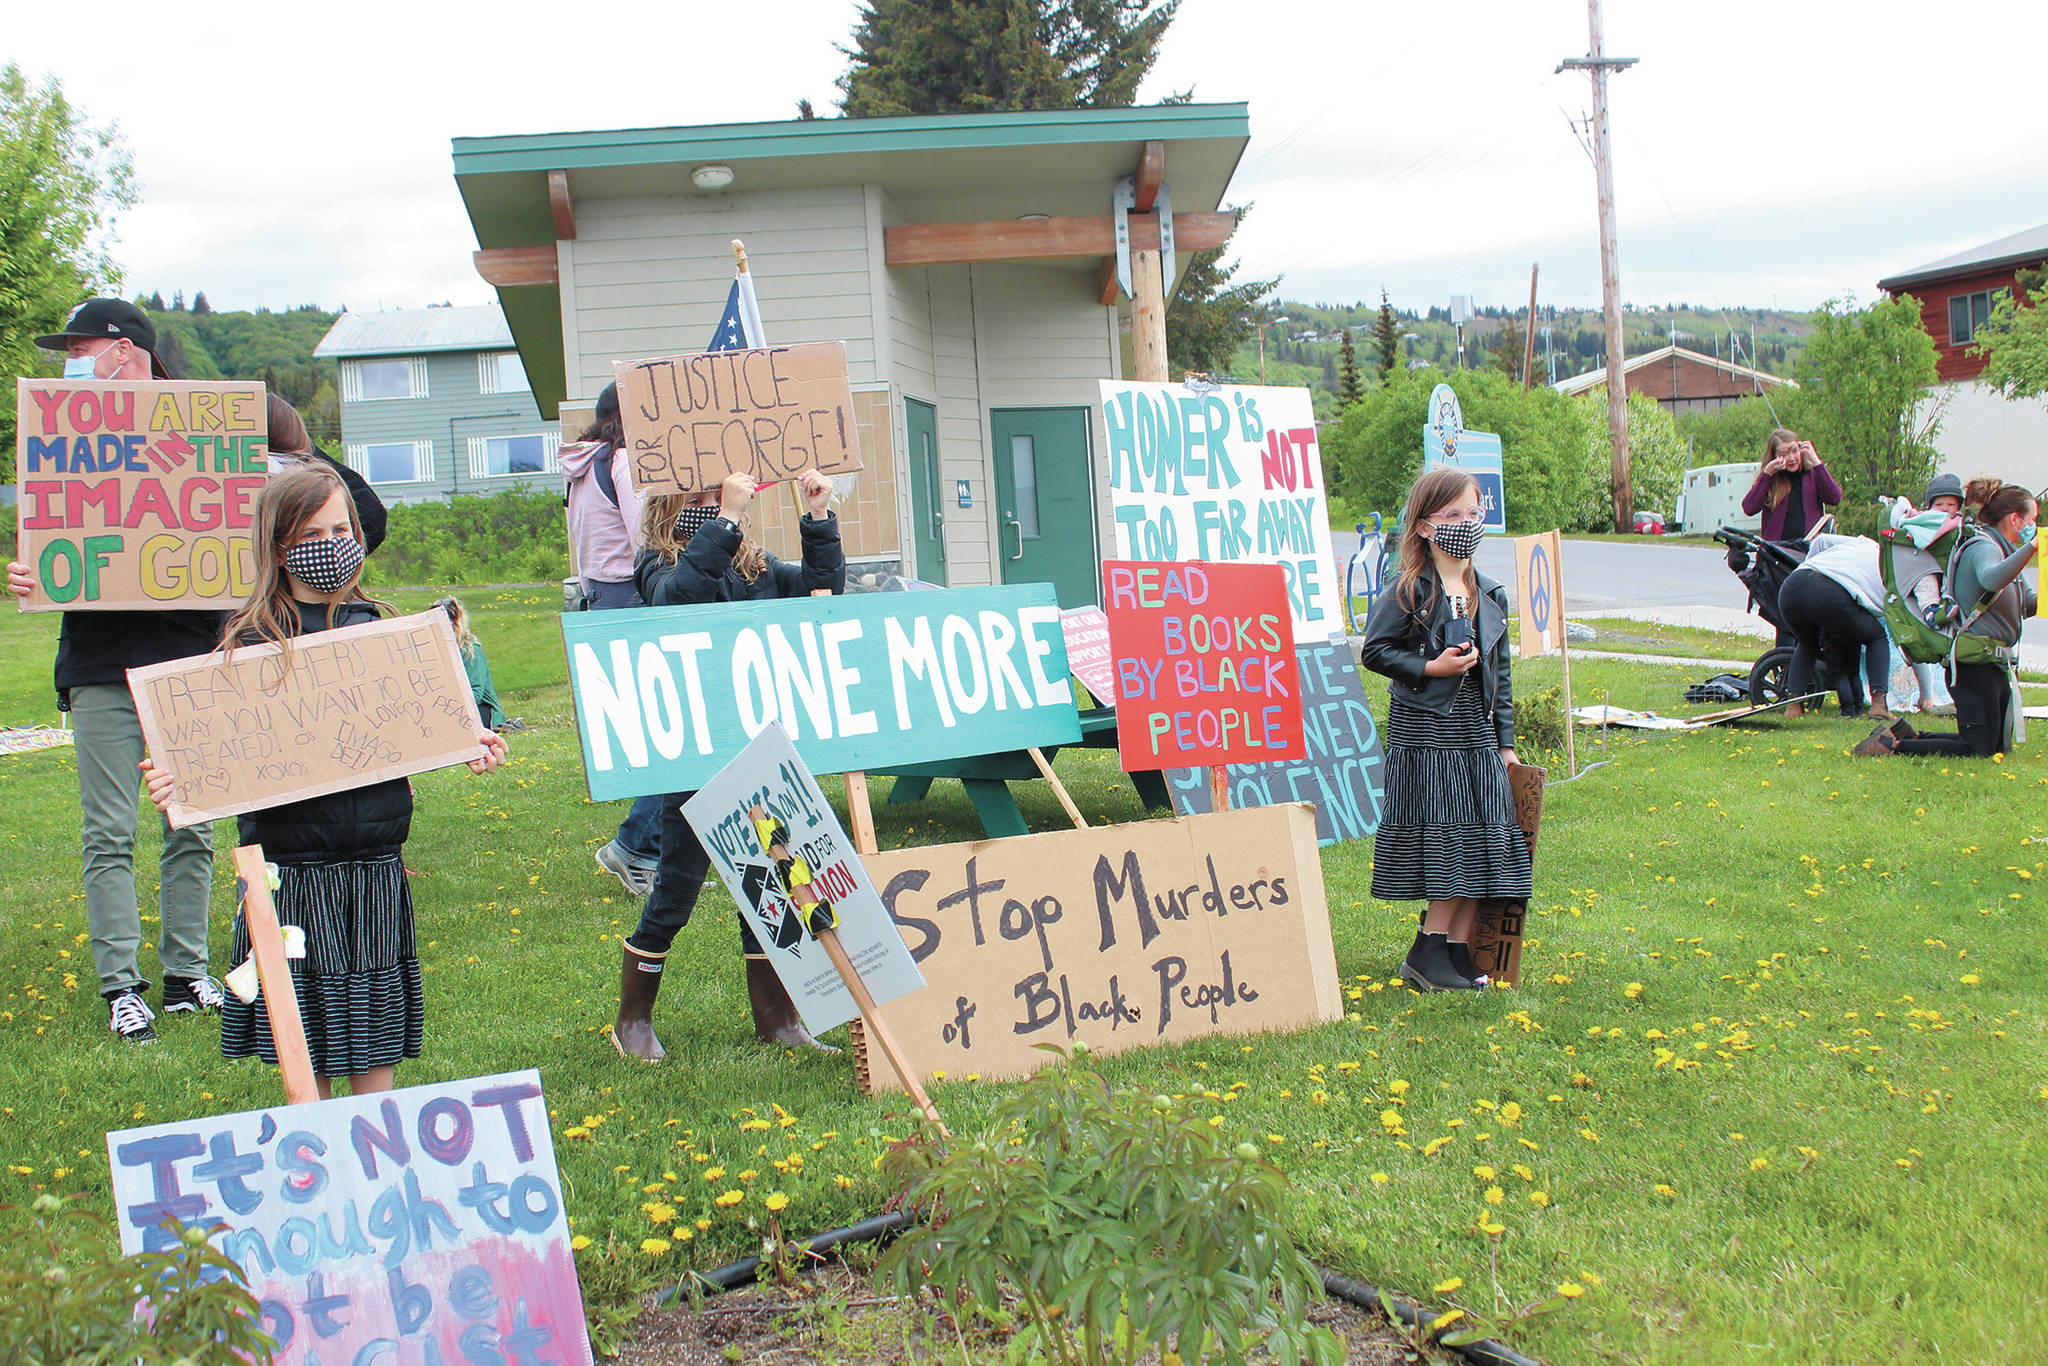 Families and their children wave to drivers from a Black Lives Matter demonstgration at WKFL Park on Tuesday, June 2, 2020 in Homer, Alaska. (Photo by Megan Pacer/Homer News)